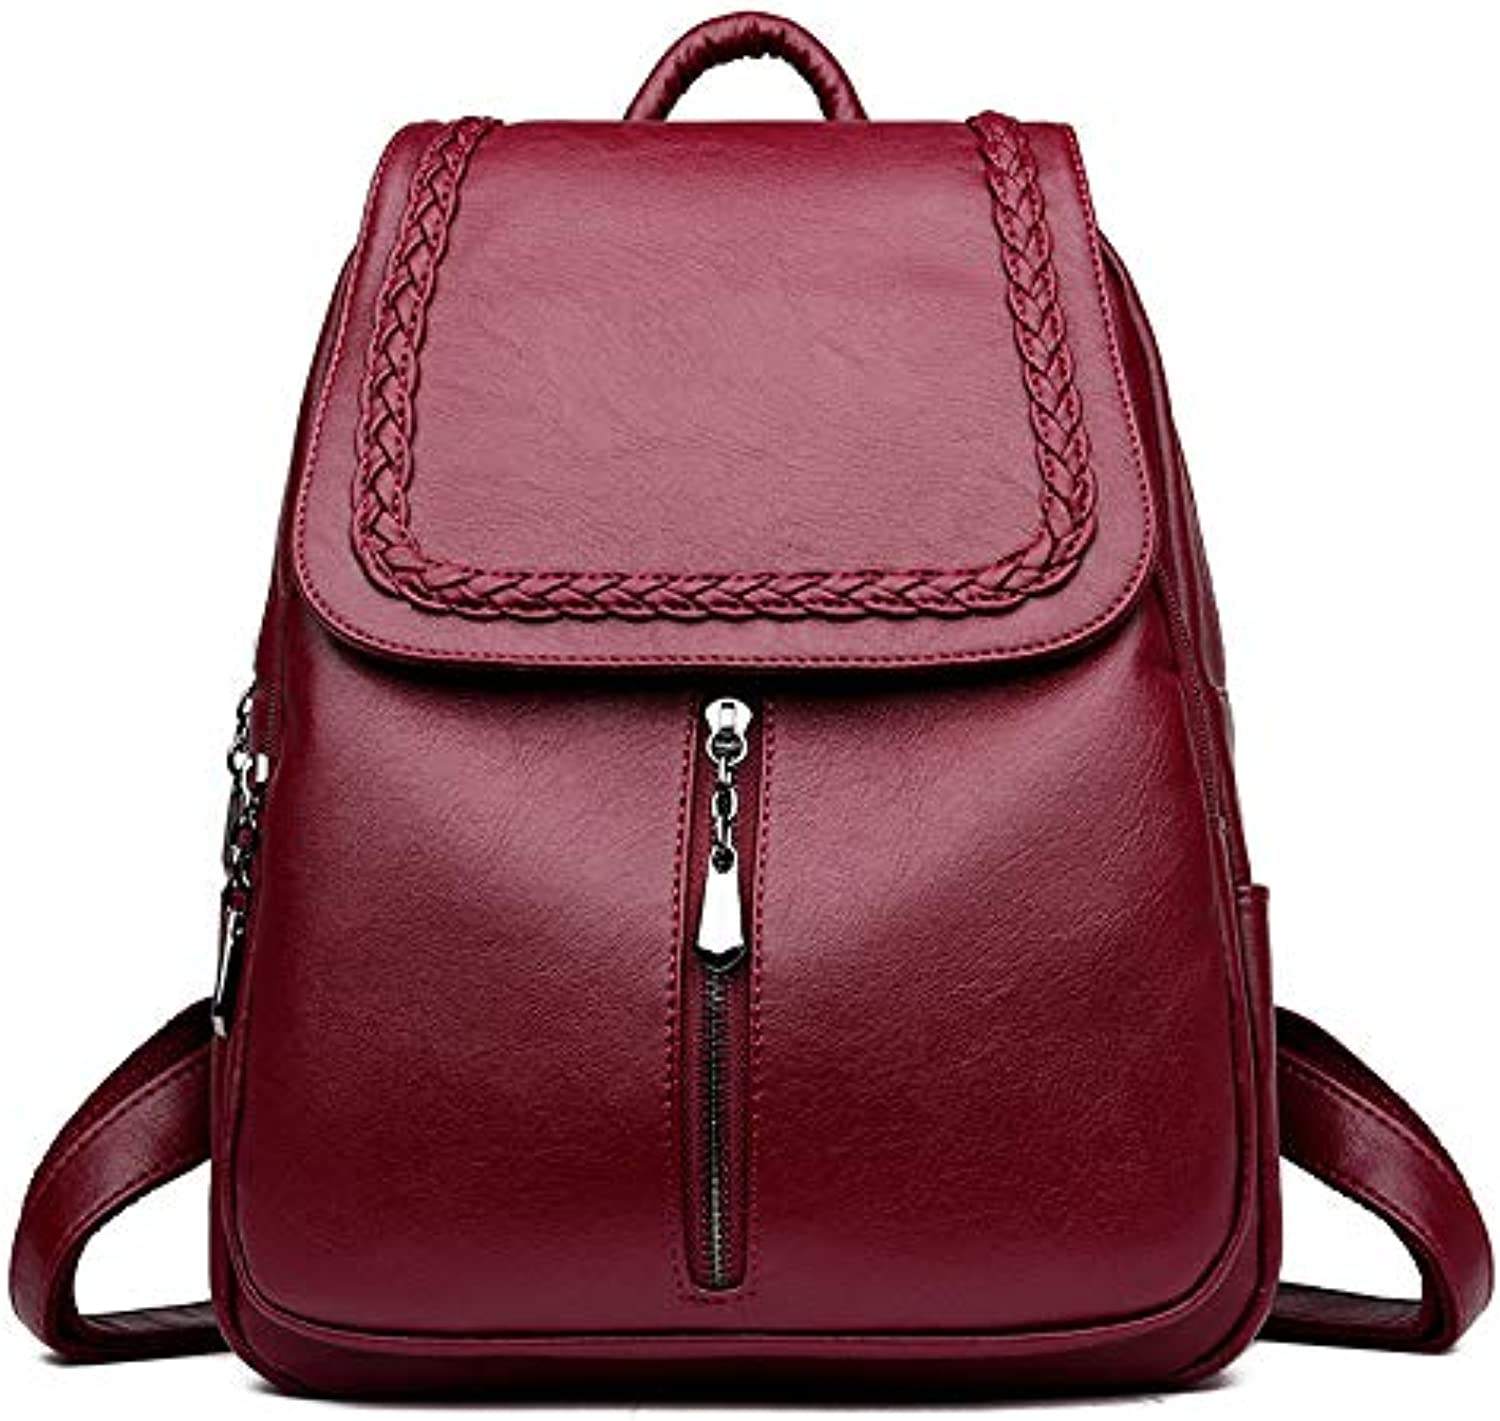 ASHIJIN Womens Backpack, Leather Backpack, Backpack for Women, Fashion Designer Backpacks for Girls